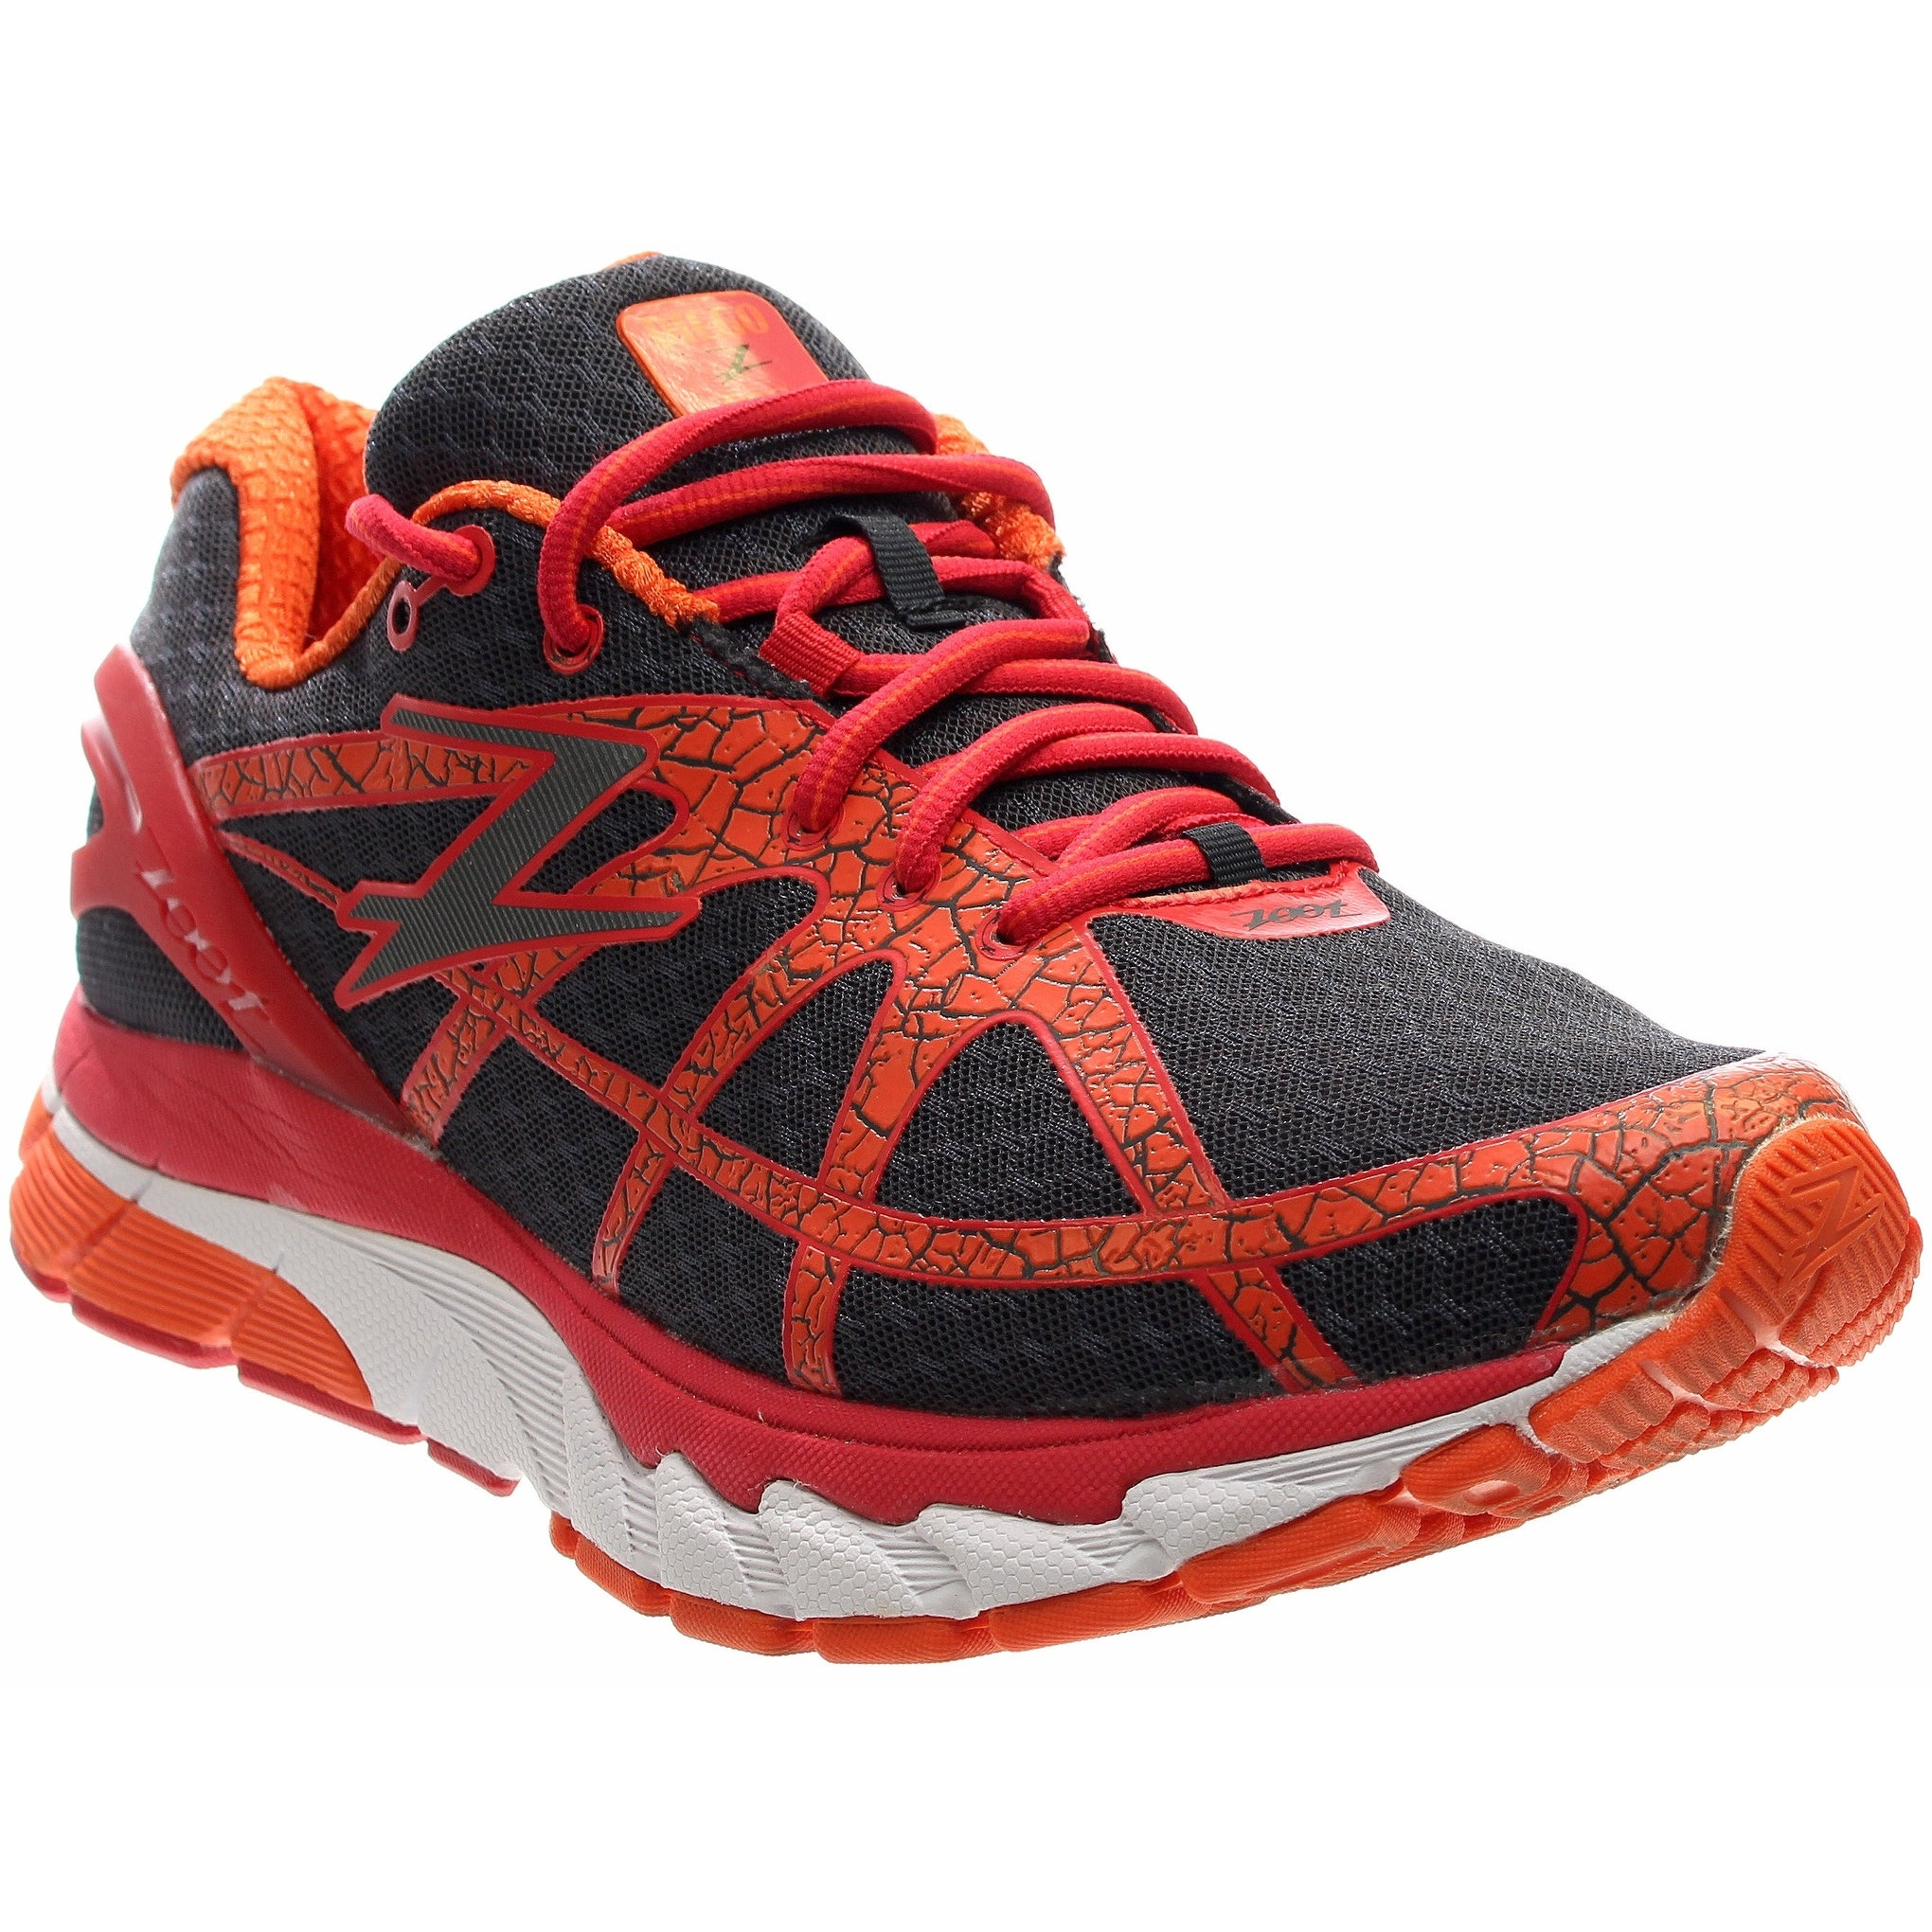 Zoot Sports Del Mar Running Shoes  Casual Running  Shoes Blue Mens